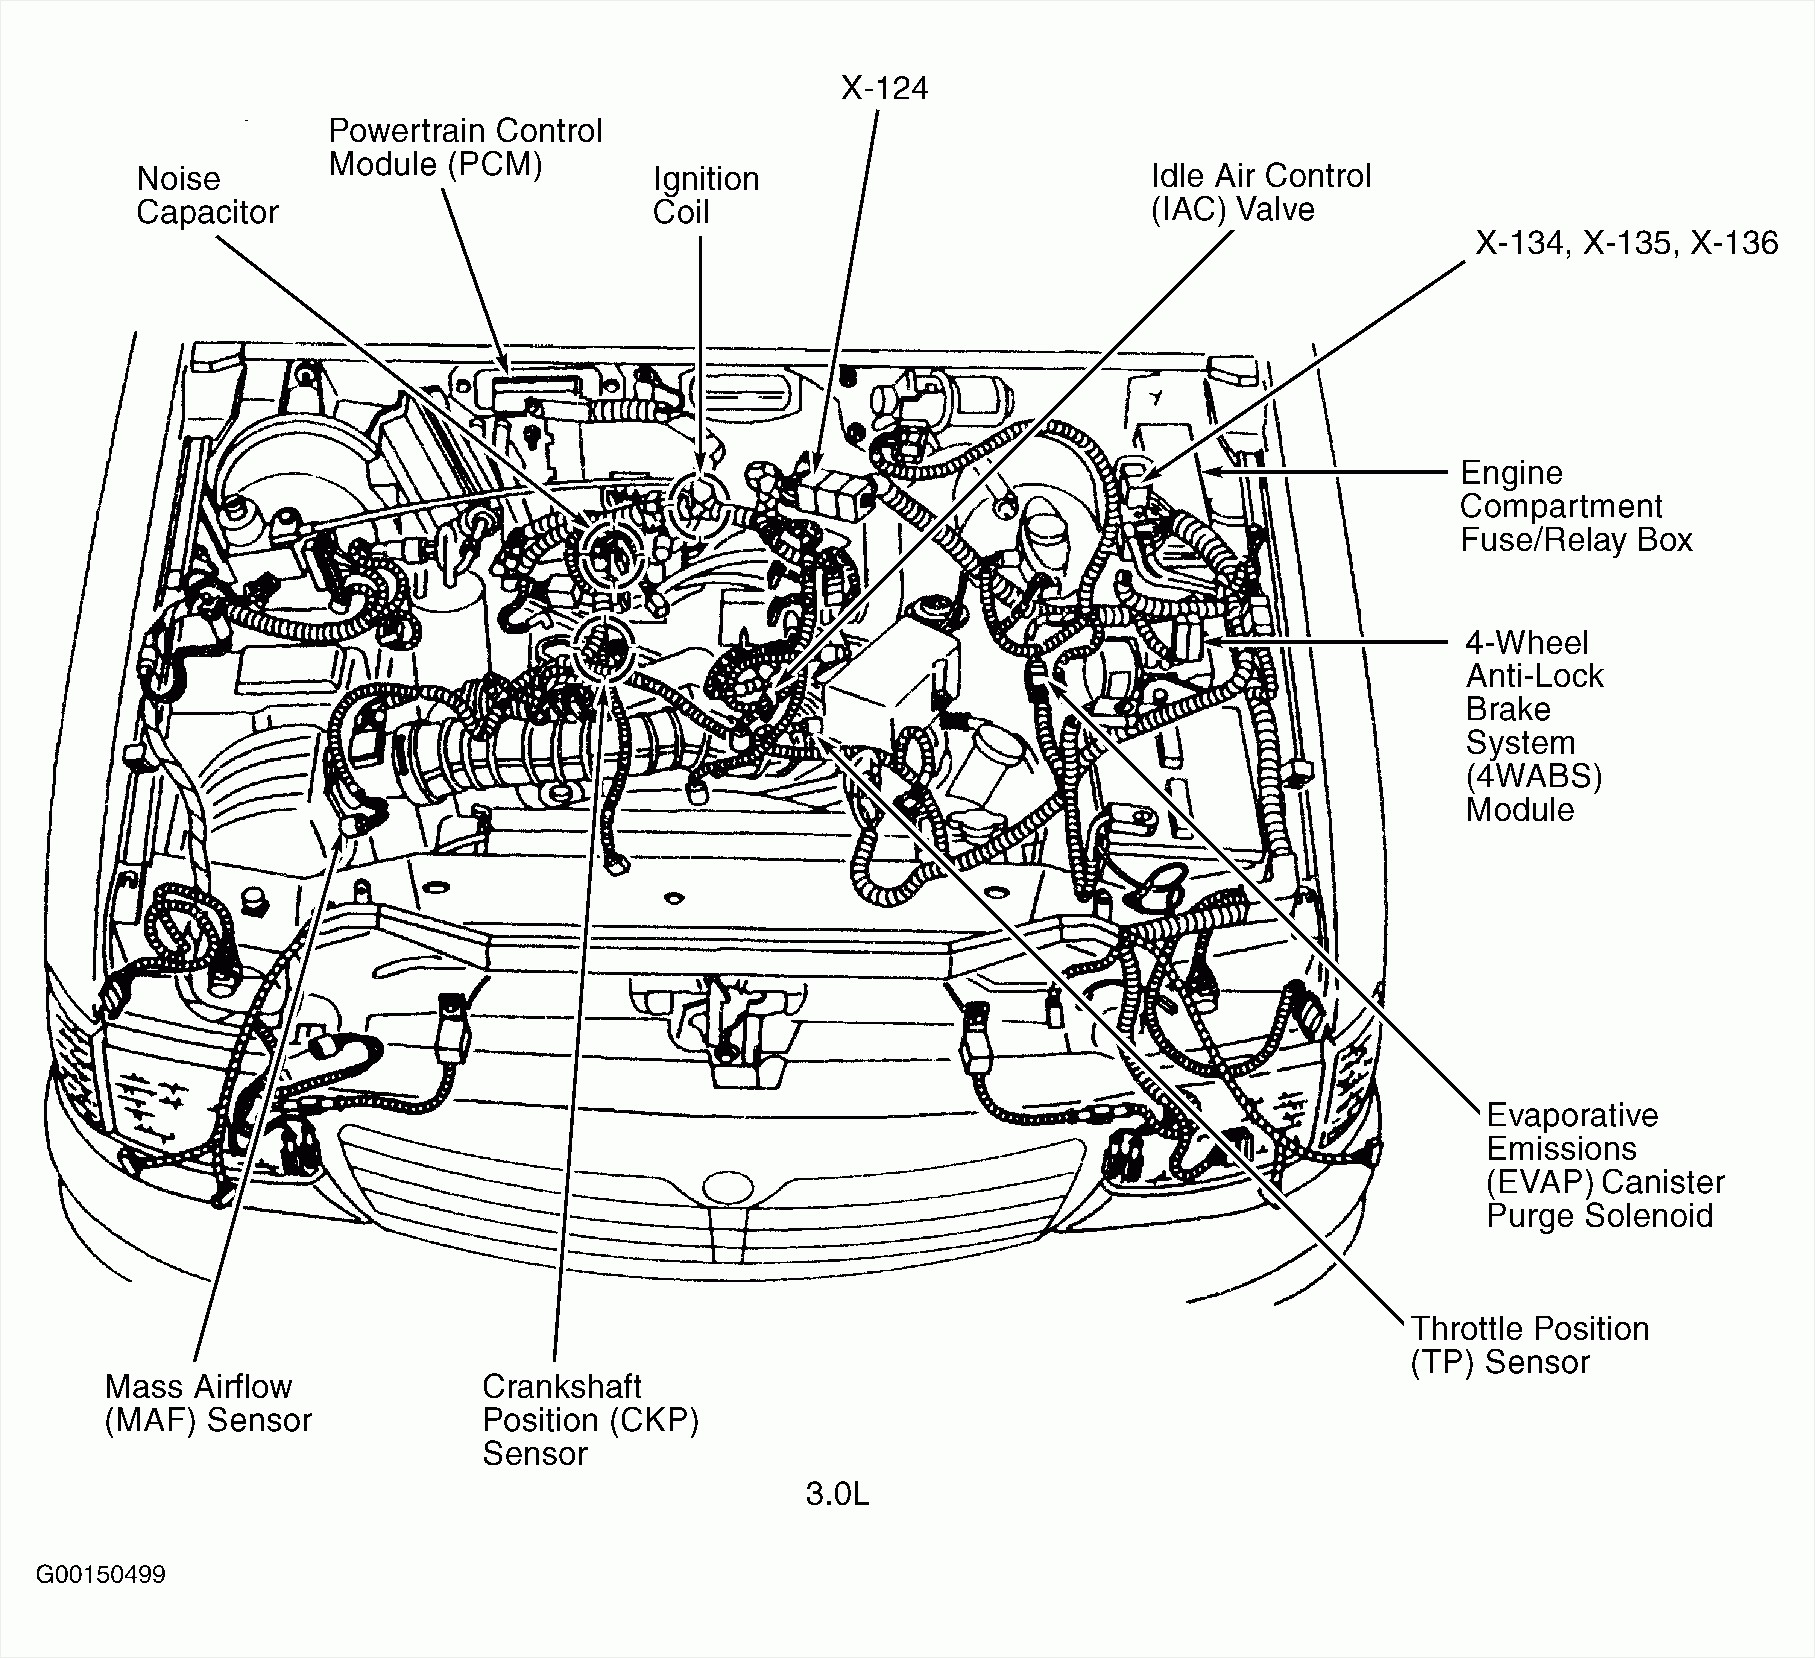 Jaguar Xk8 Abs Wiring Diagram | Wiring Liry on jaguar r type, jaguar 2 door, jaguar mark x, jaguar growler, 2005 mini cooper parts diagrams, jaguar rear end, jaguar xk8 problems, jaguar mark 2, jaguar exhaust system, jaguar hardtop convertible, jaguar fuel pump diagram, jaguar gt, jaguar parts diagrams, jaguar electrical diagrams, jaguar shooting brake, jaguar 2014 models, jaguar wagon, jaguar racing green, jaguar e class, dish network receiver installation diagrams,